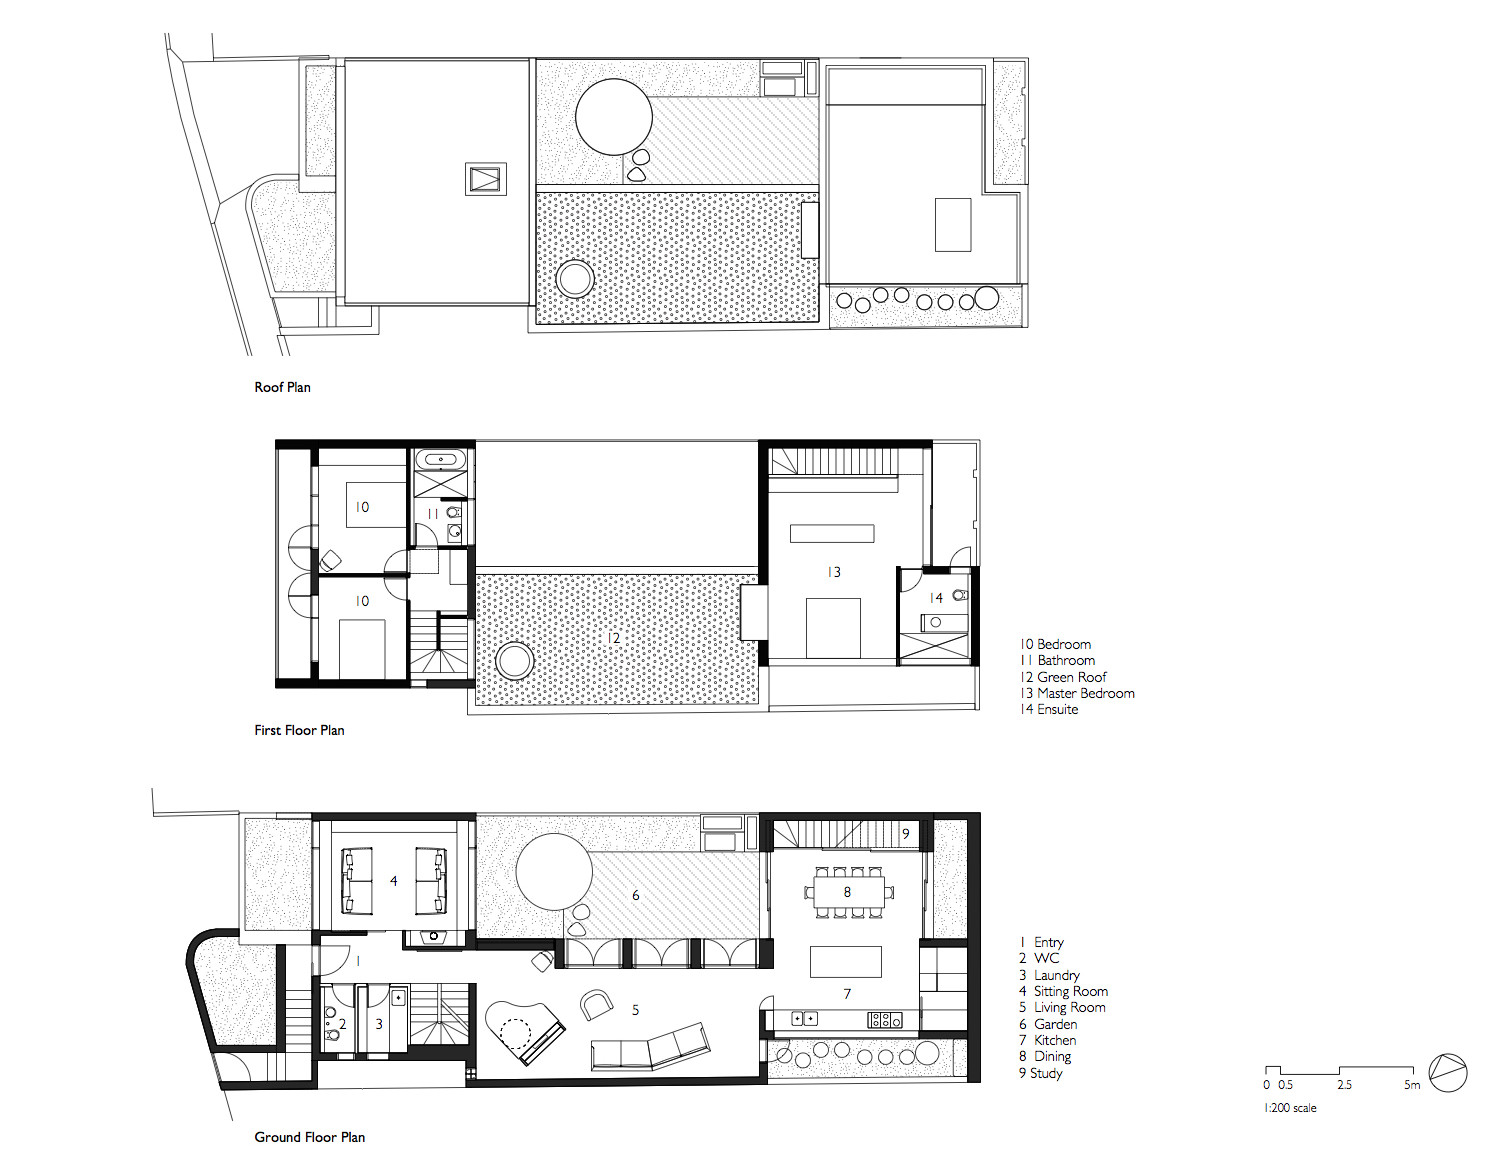 Courtyard house aileen sage architects archdaily for Sage floor plan